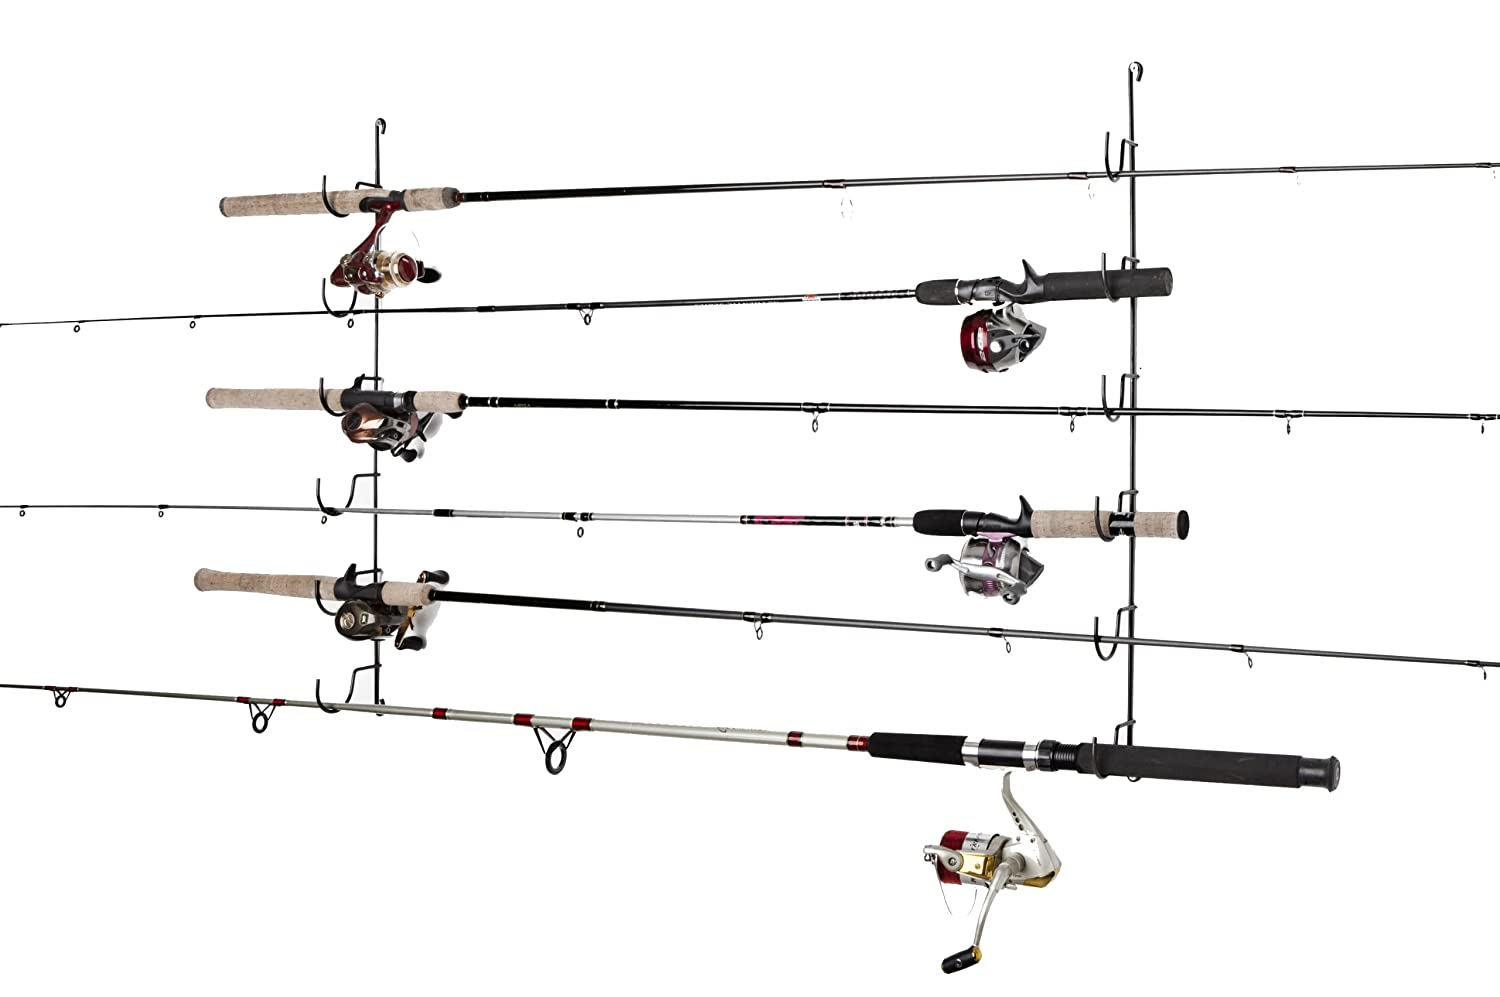 Fishing rod rack pole holder storage organize horizontal for How to store fishing rods